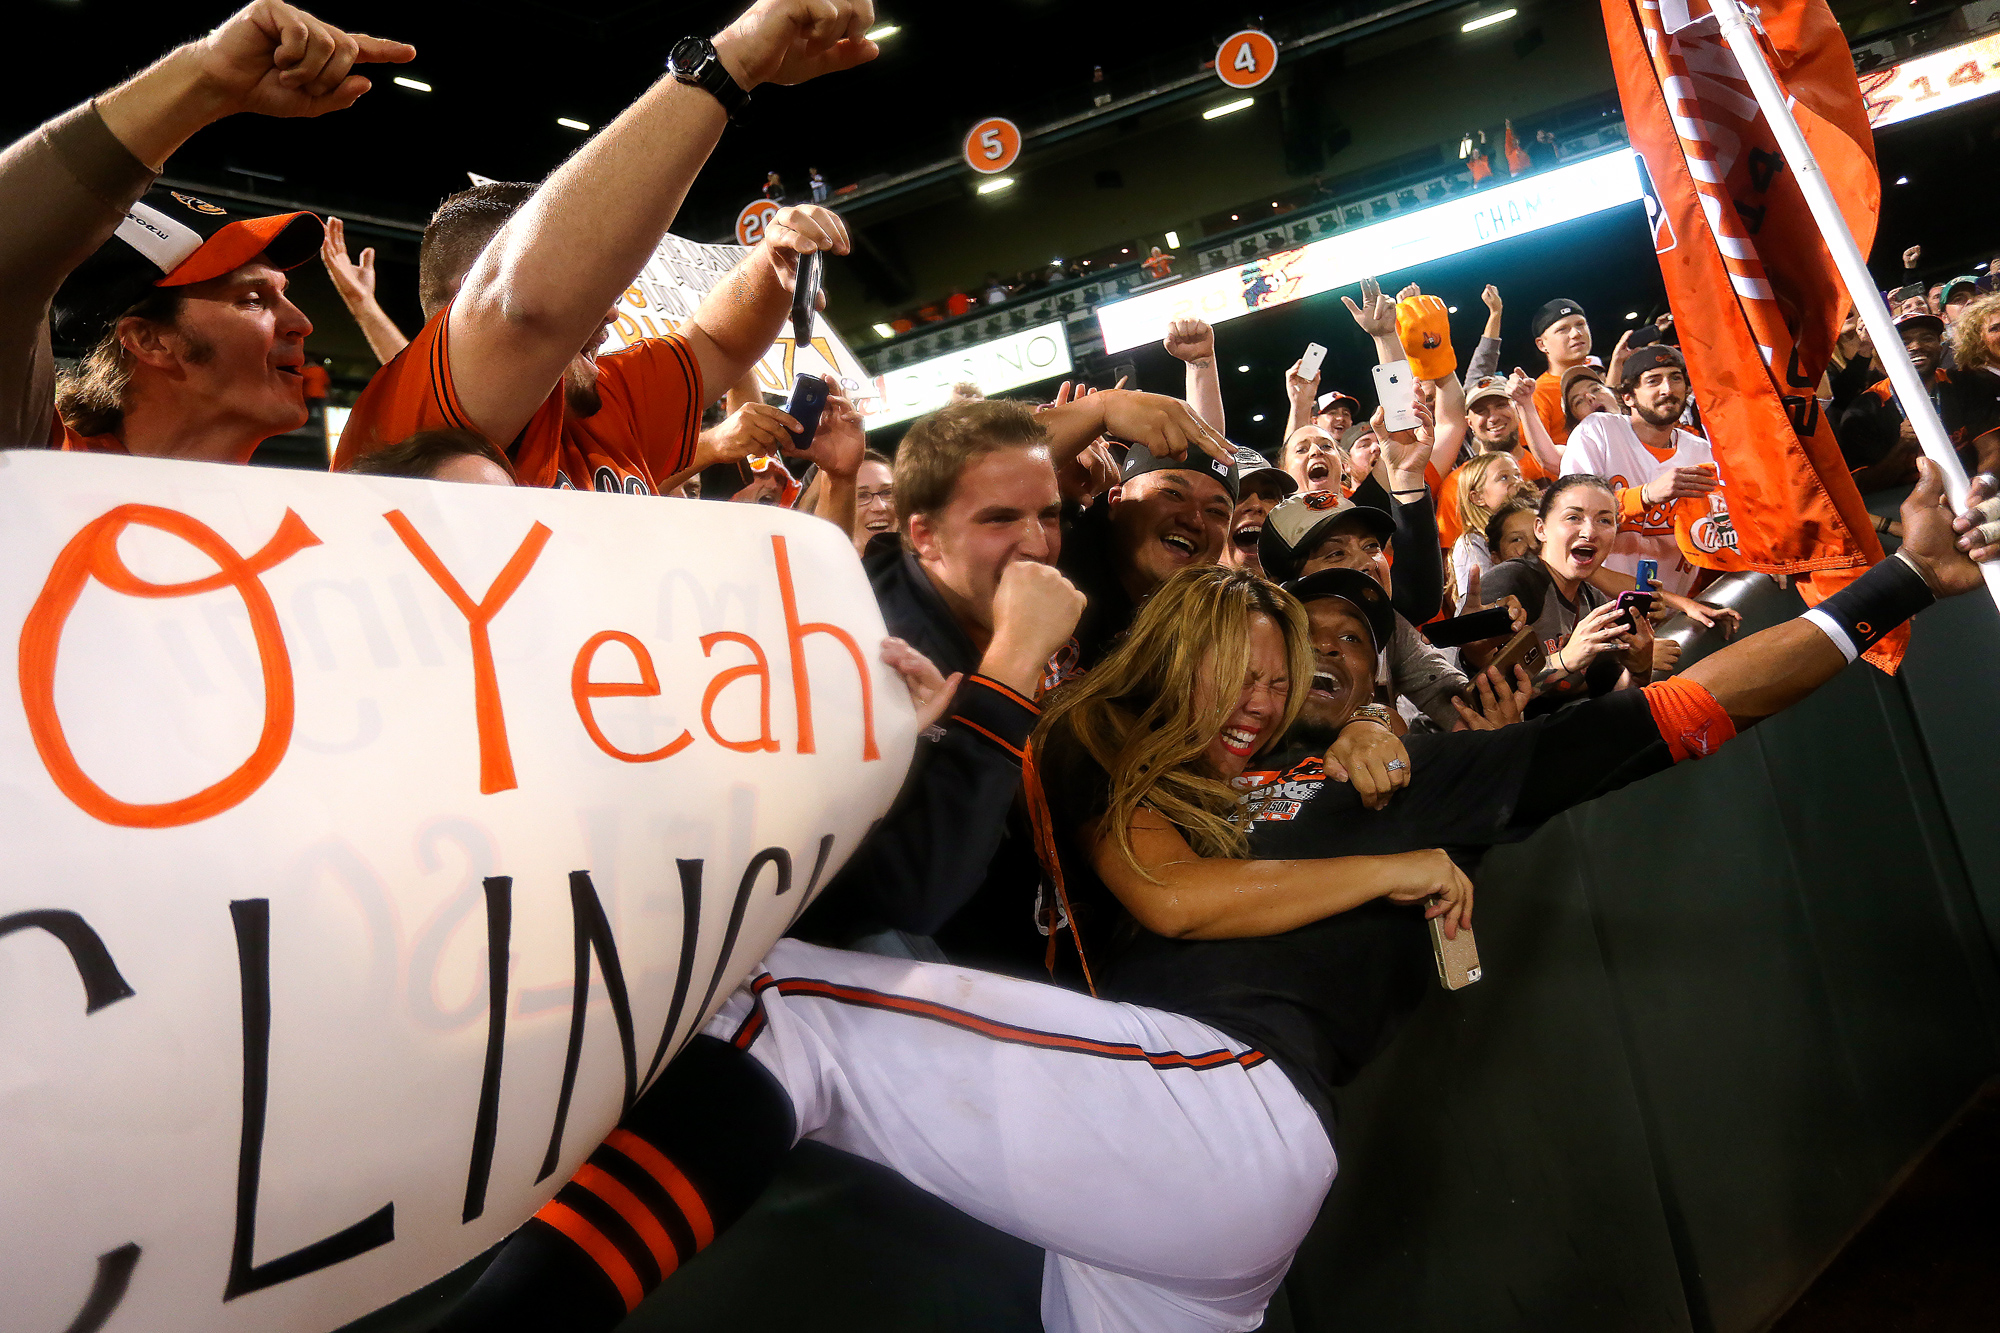 Center fielder Adam Jones of the Baltimore Orioles celebrates with fans after the Orioles defeated the Toronto Blue Jays to clinch the American League East Division at Oriole Park at Camden Yards in Baltimore, Maryland on Sept. 16, 2014.